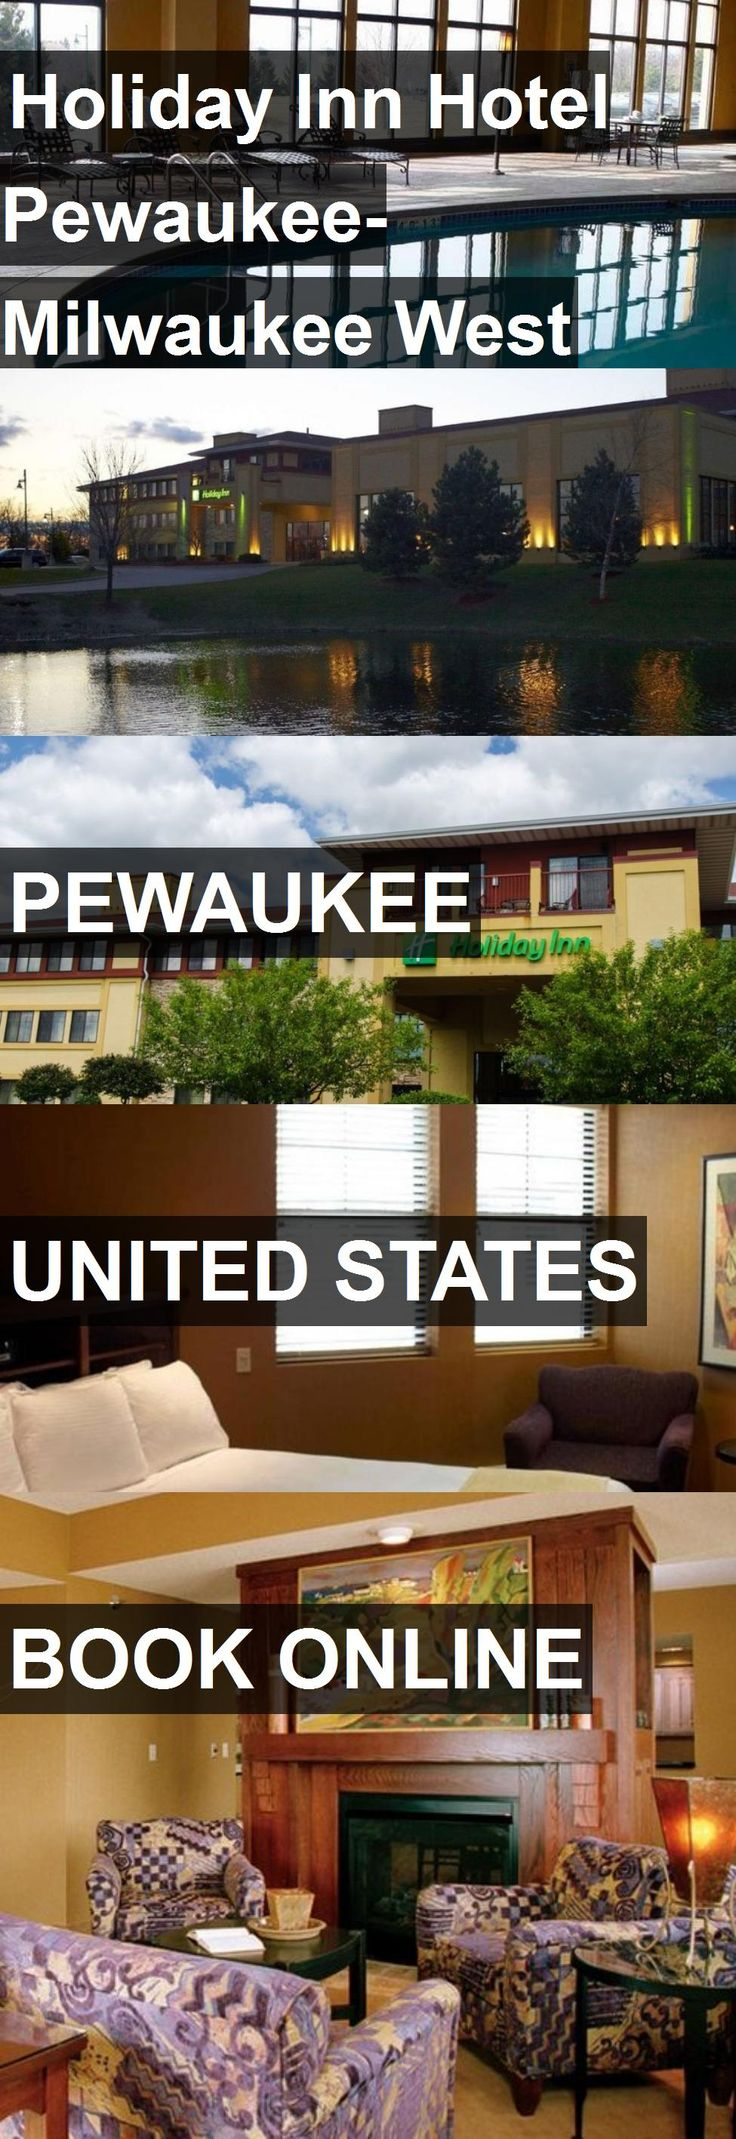 Holiday Inn Hotel Pewaukee-Milwaukee West in Pewaukee, United States. For more information, photos, reviews and best prices please follow the link. #UnitedStates #Pewaukee #travel #vacation #hotel